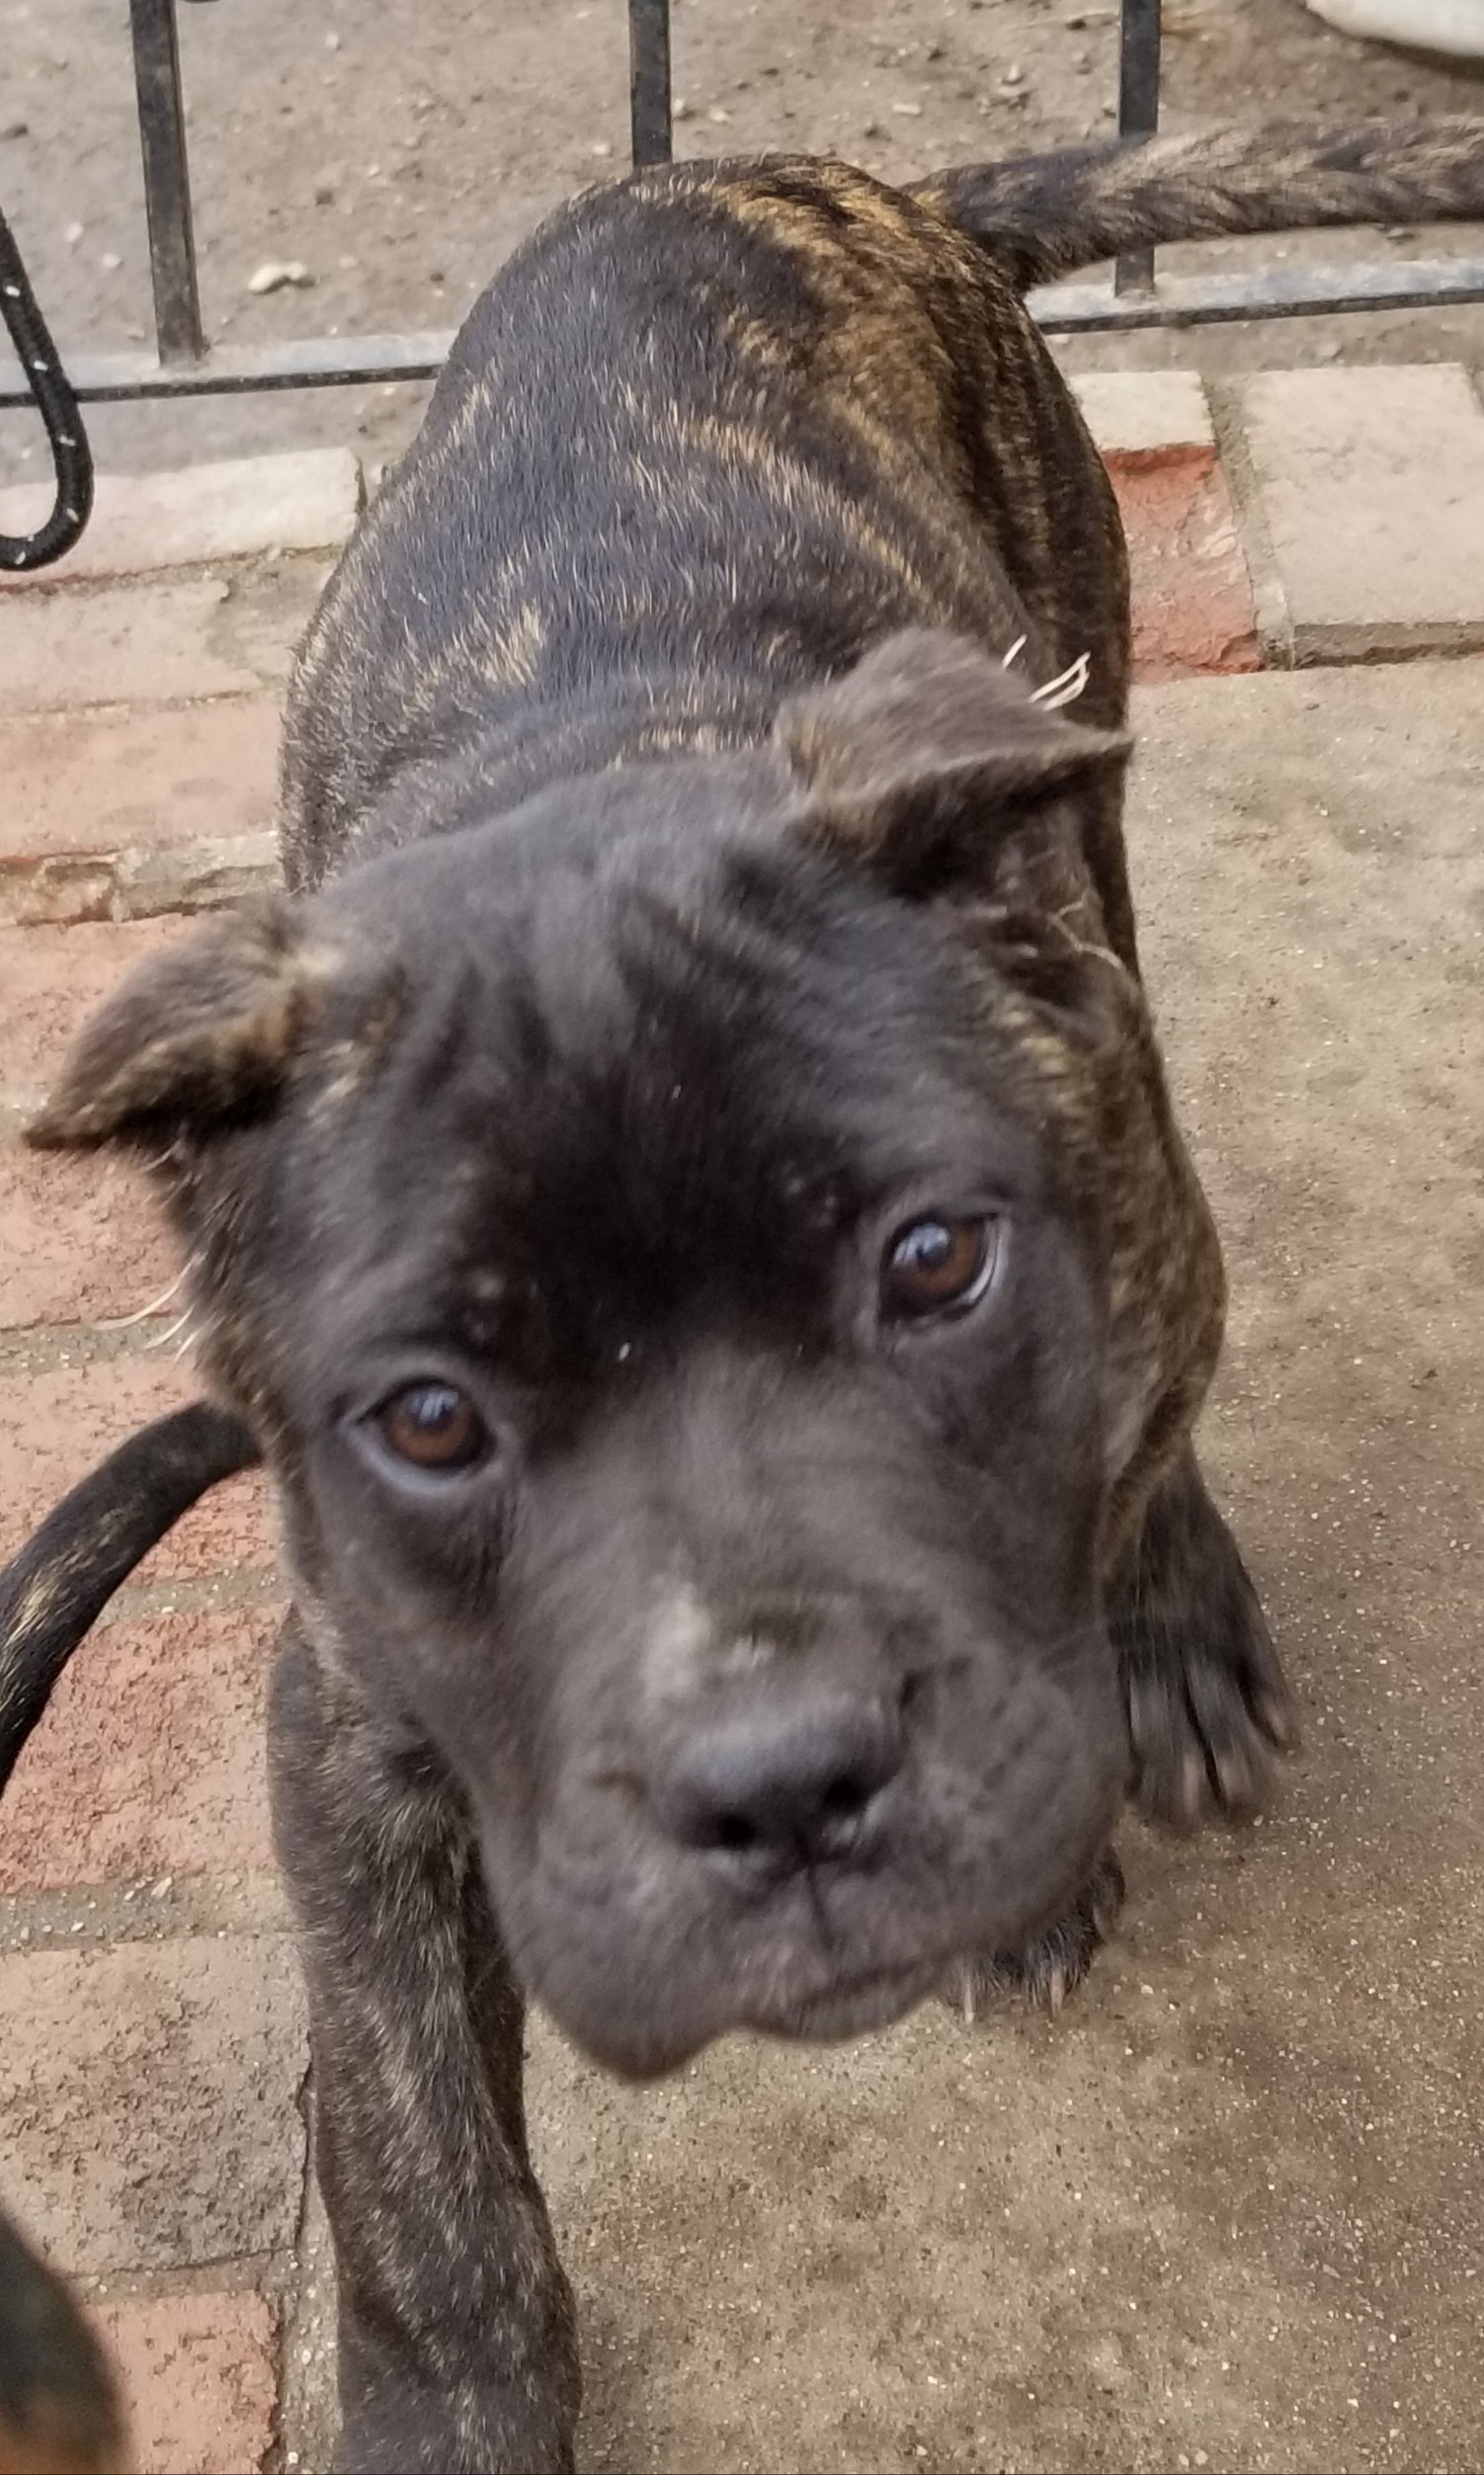 Tiny - Cane Corso puppy for sale in Boston, Massachusetts